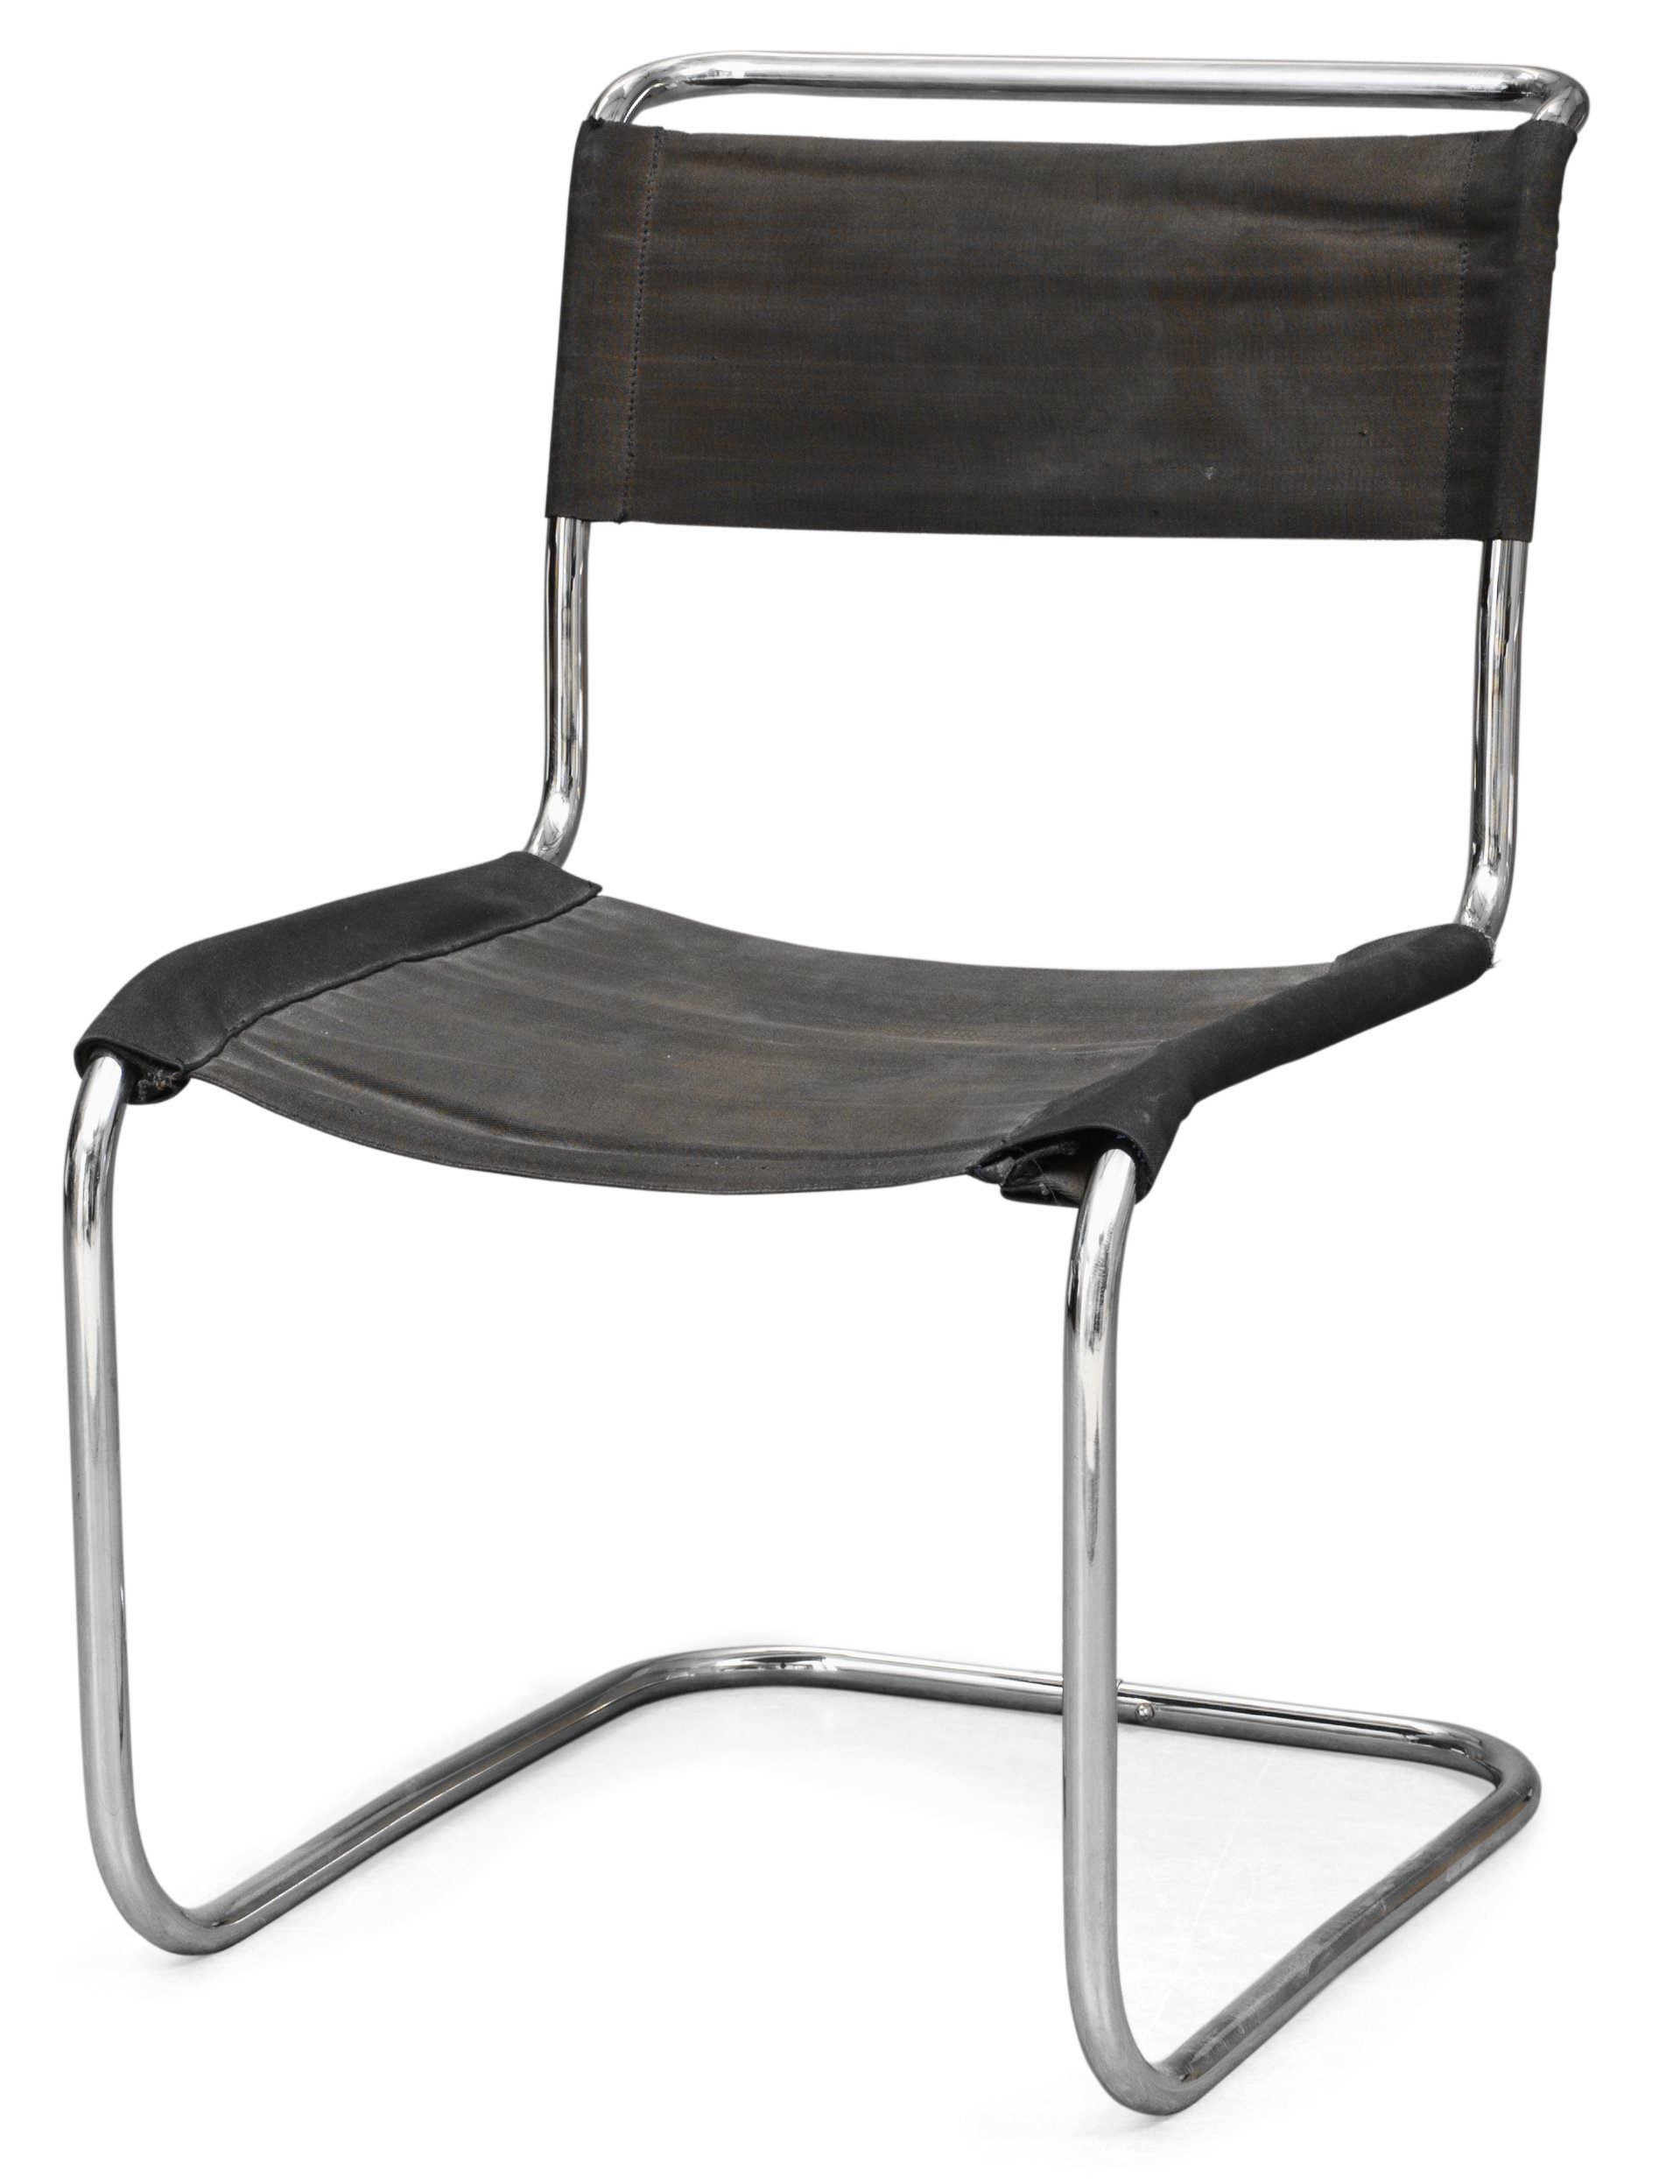 a marcel breuer chrome plated b33 chair probably by. Black Bedroom Furniture Sets. Home Design Ideas